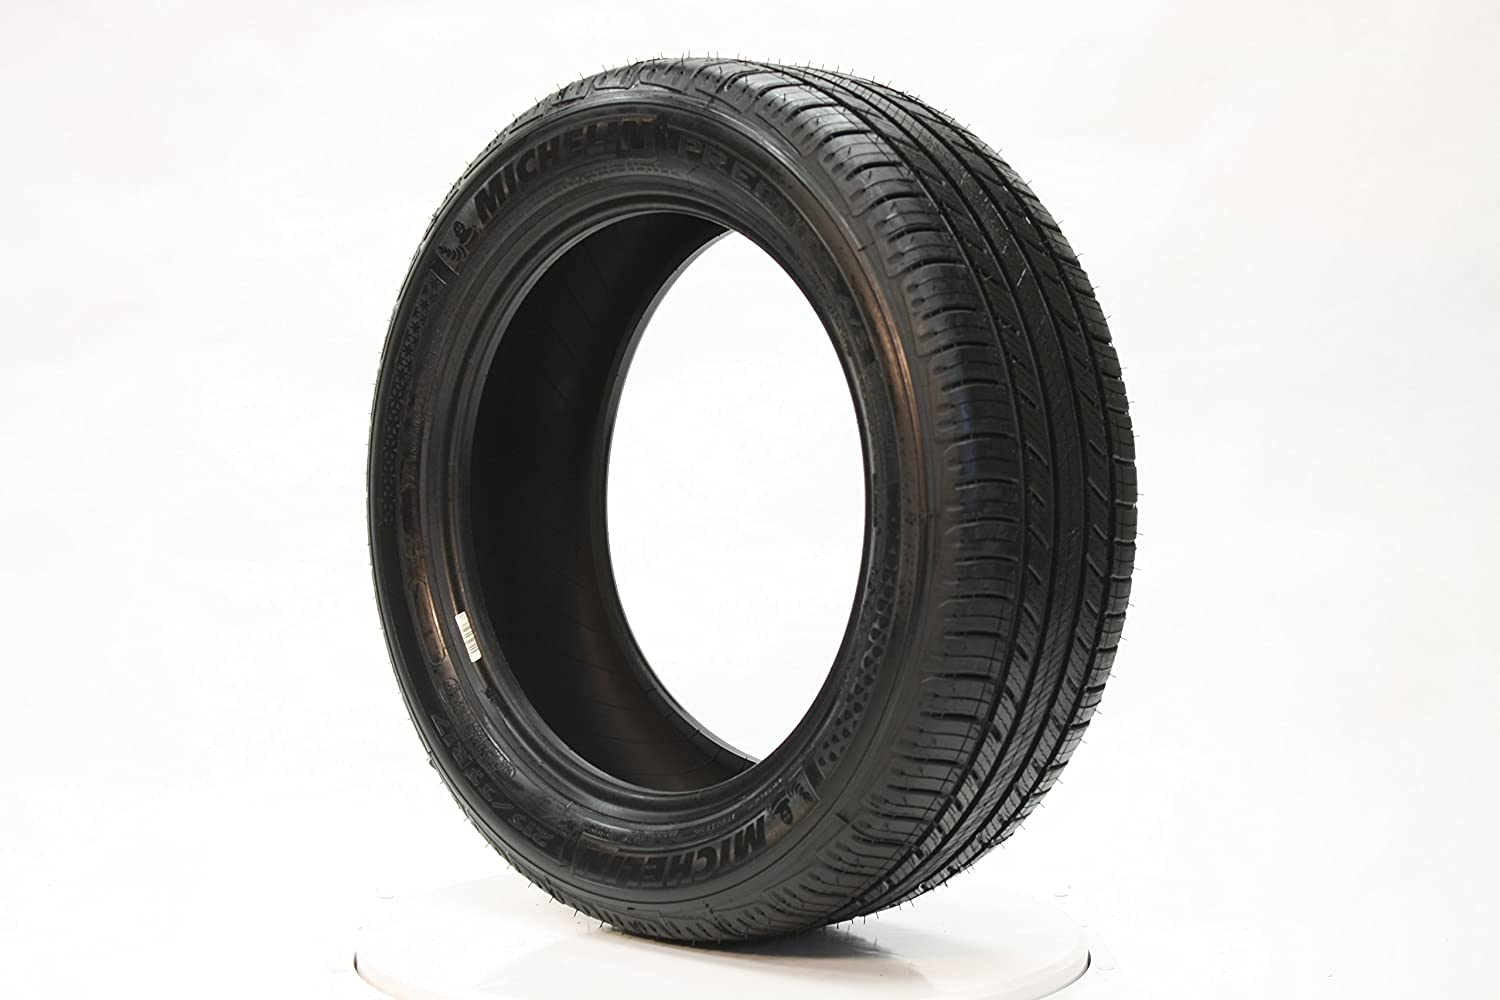 Michelin Premier A/S Touring Radial Tire - 215/55R17 94V 73446